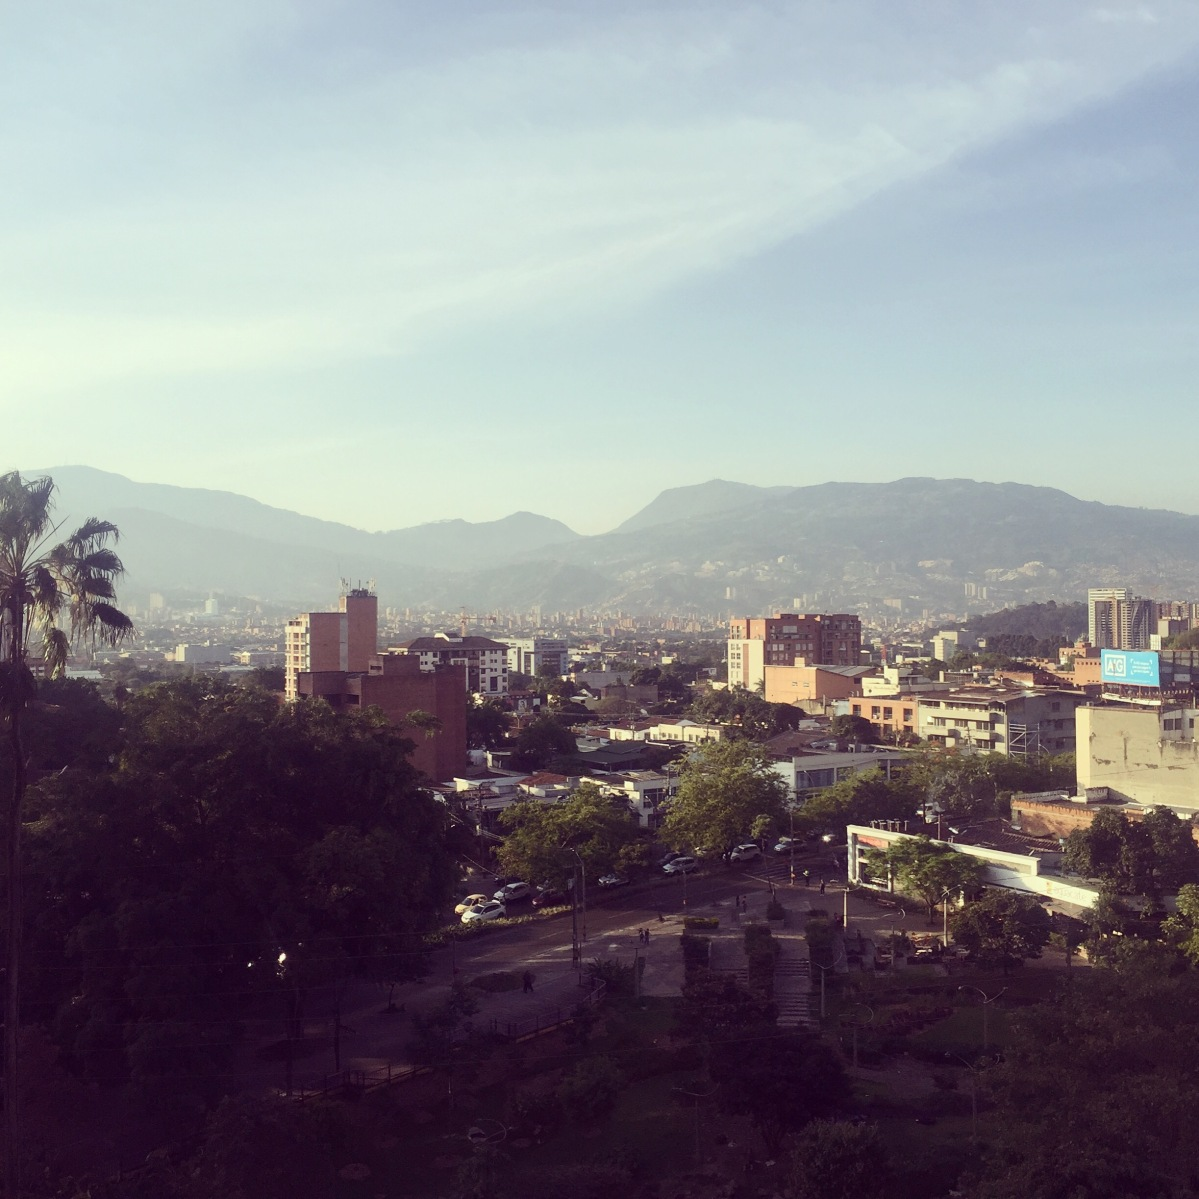 Medellin - where to eat, sleep and practice yoga